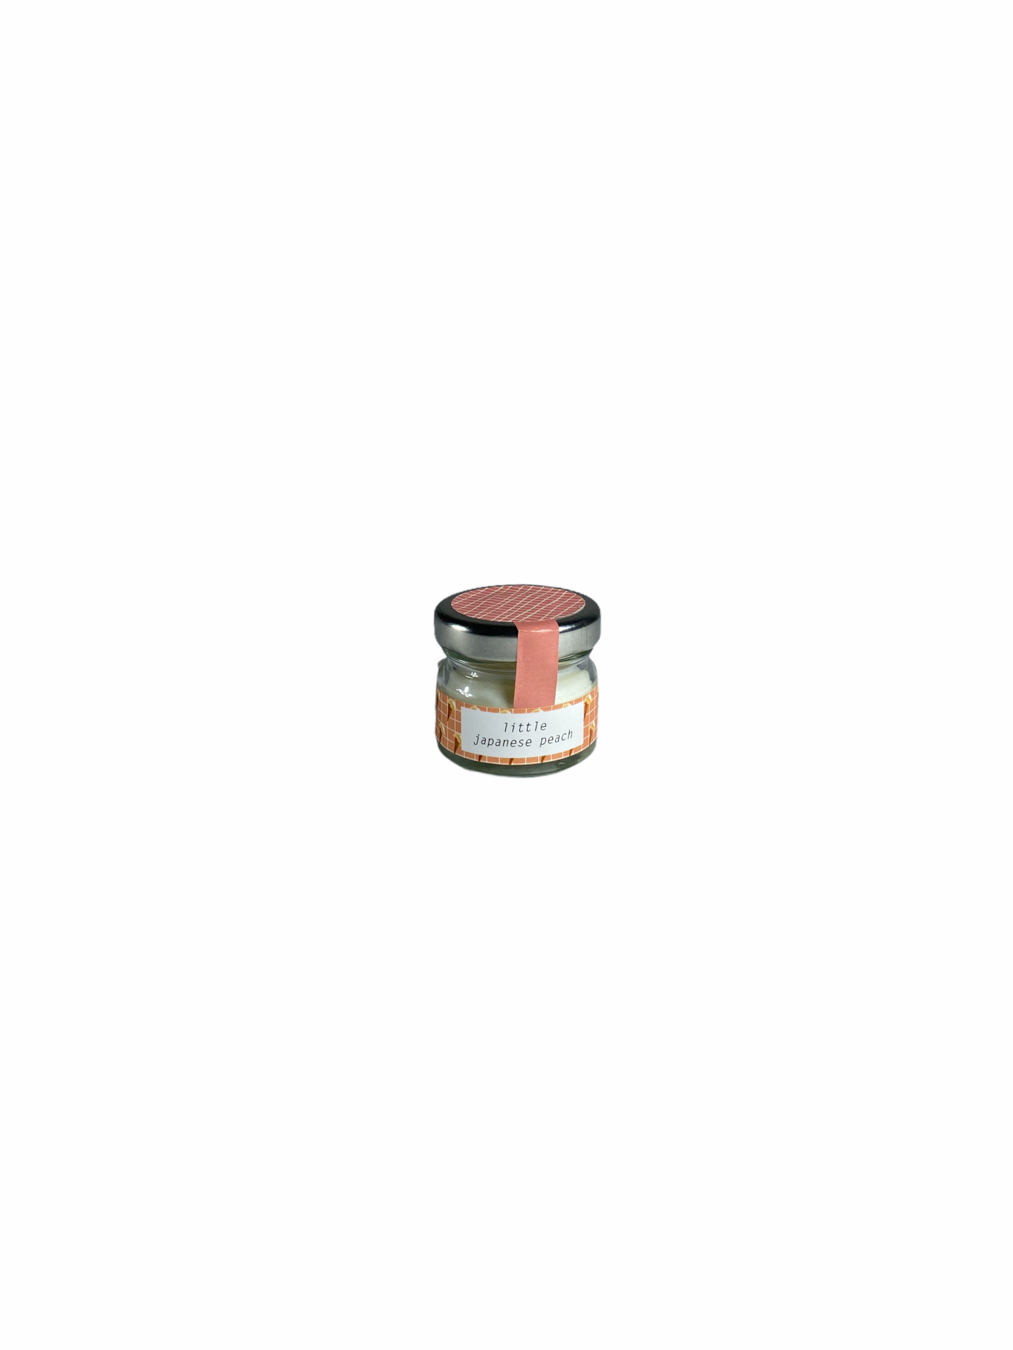 Little Japanese Peach Candle